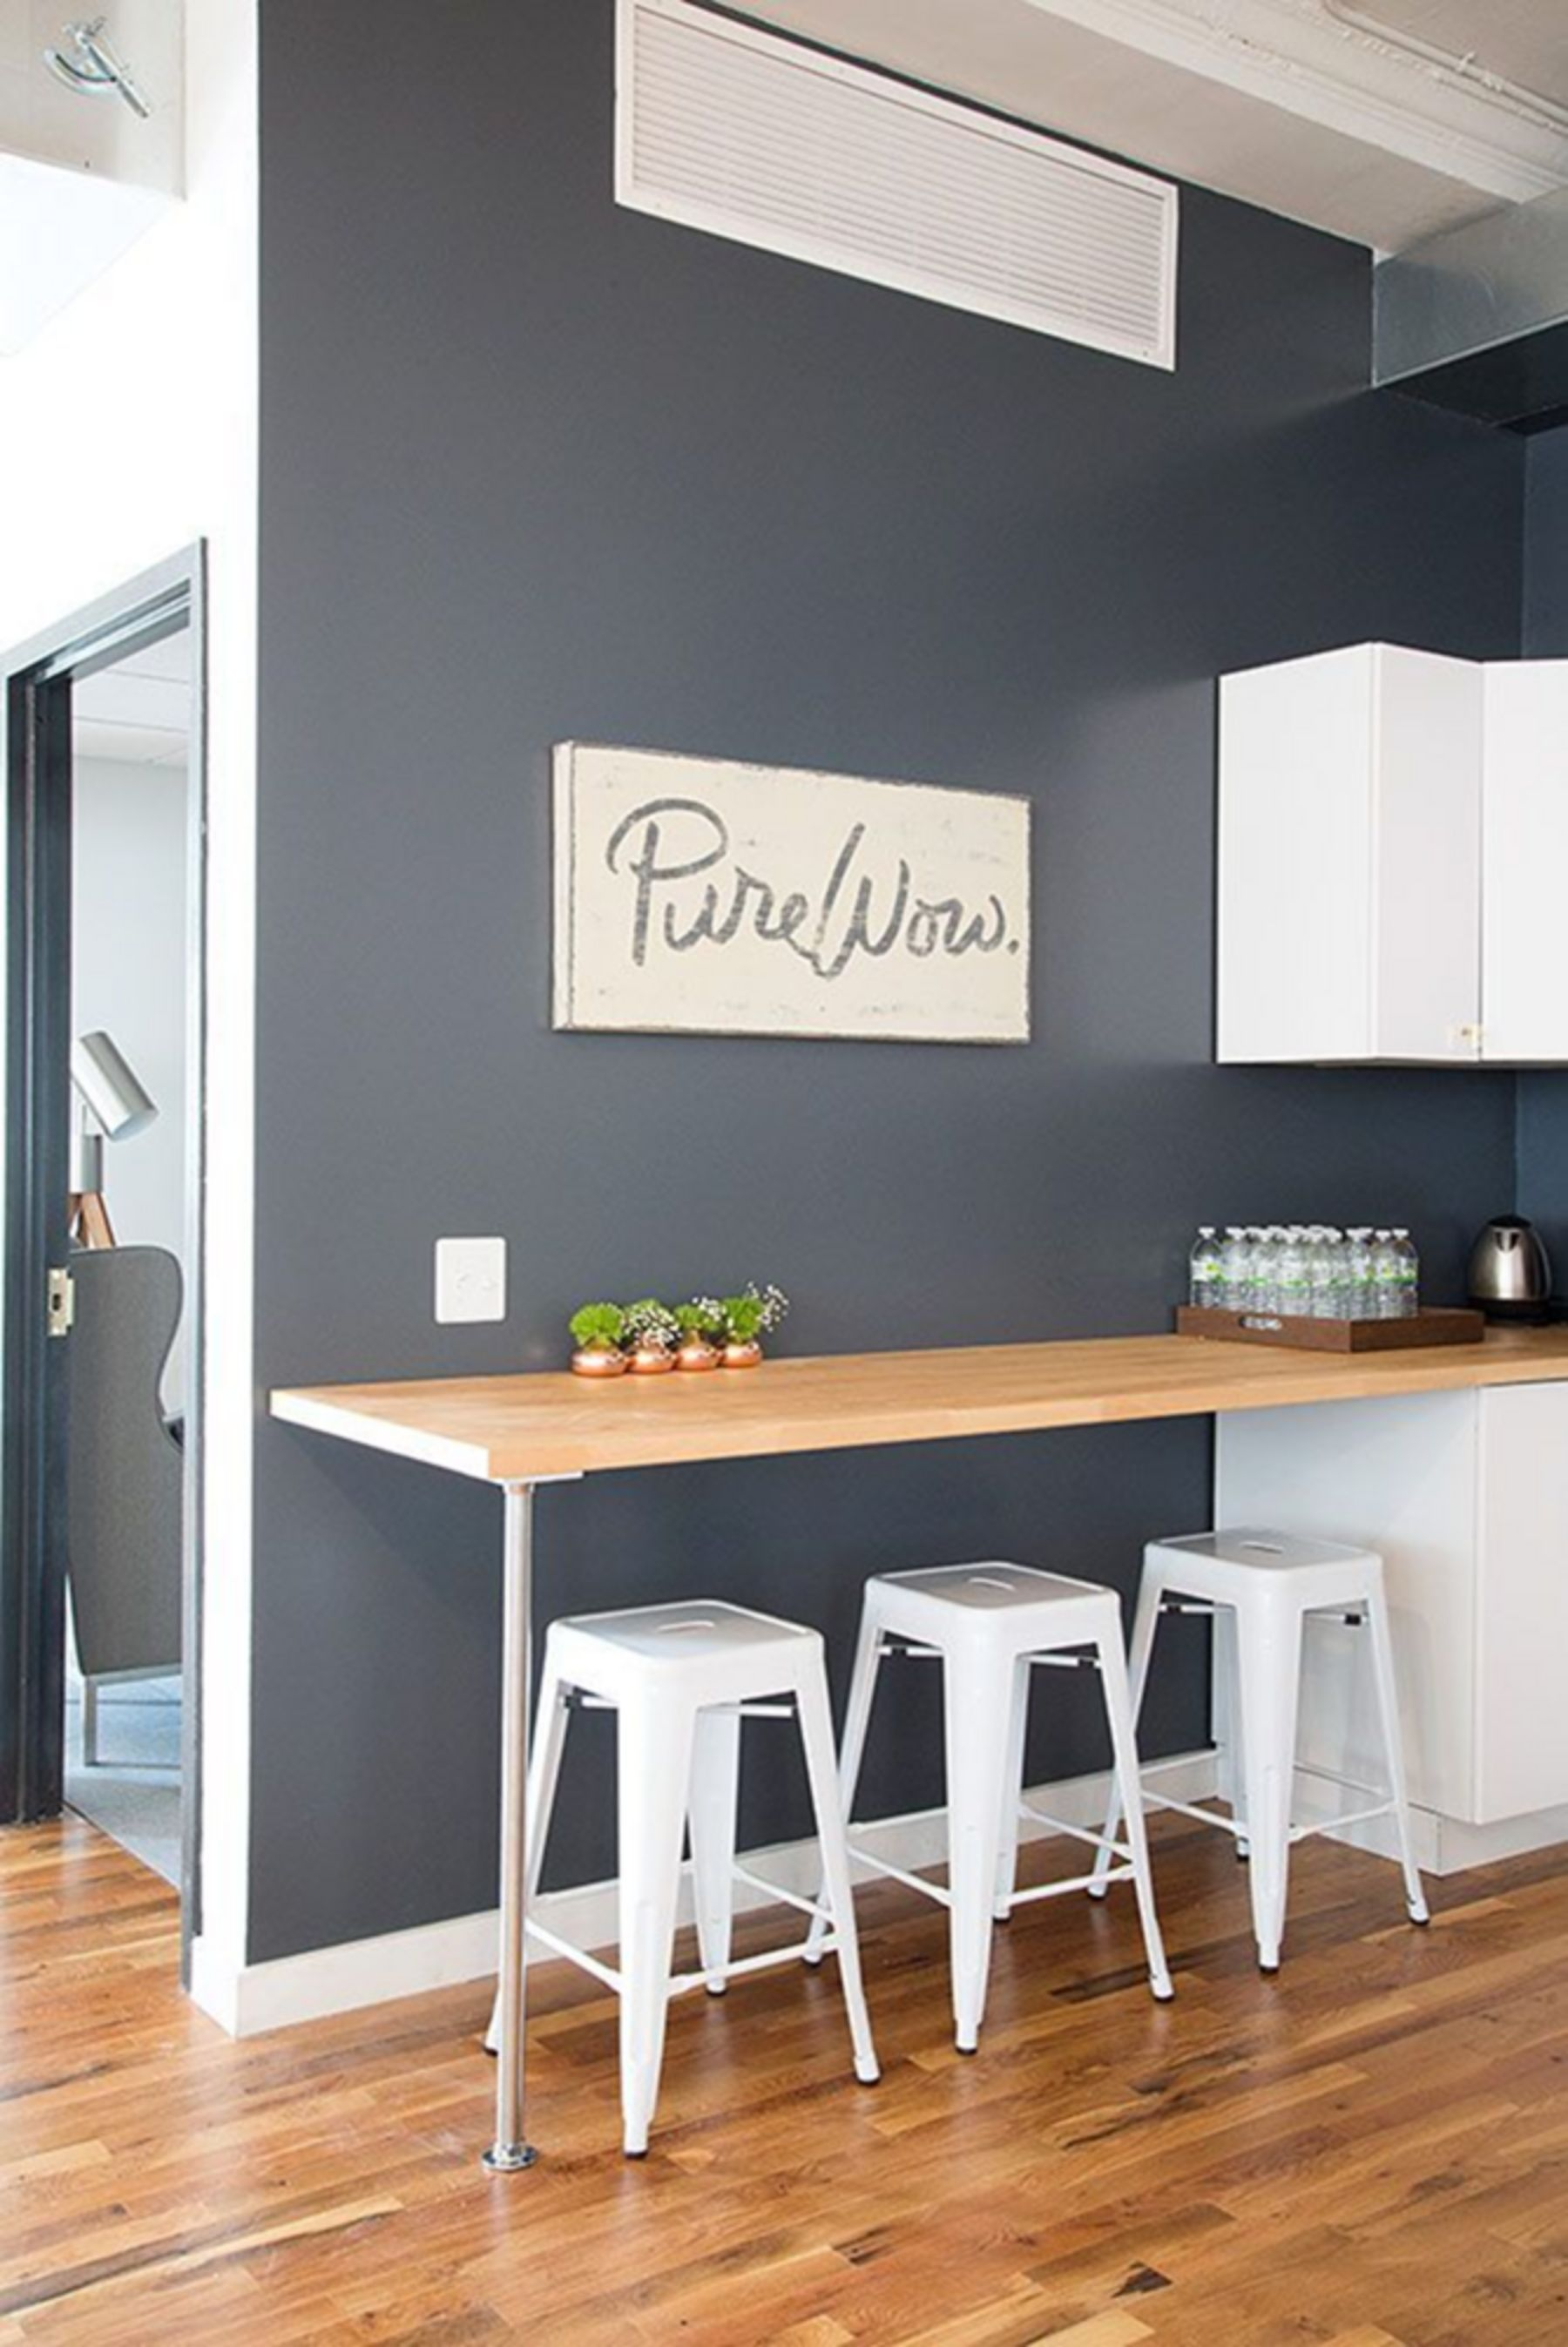 Top 10 Minimalist Bar Table Design Ideas For Your Small Kitchen 10 Bar Design For Ideas Kitchen In 2020 Bar Table Design Small Kitchen Bar Kitchen Design Small